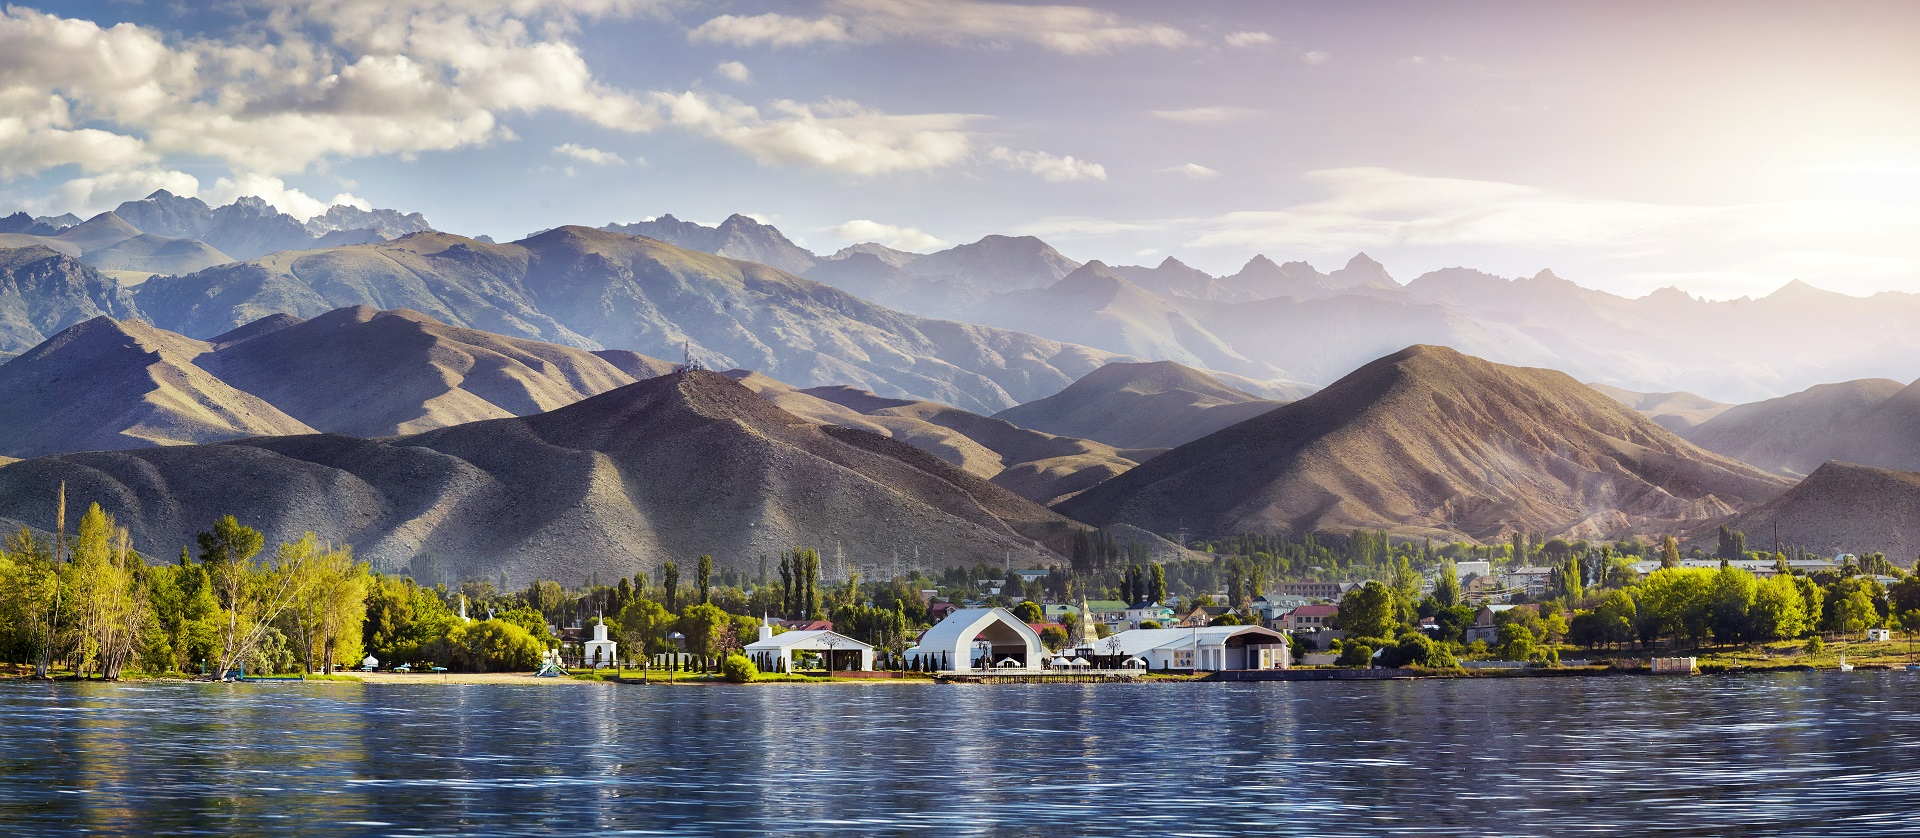 View to Ruh Ordo cultural complex near Issyk Kul lake at mountains background in Cholpon Ata, Kyrgyzstan